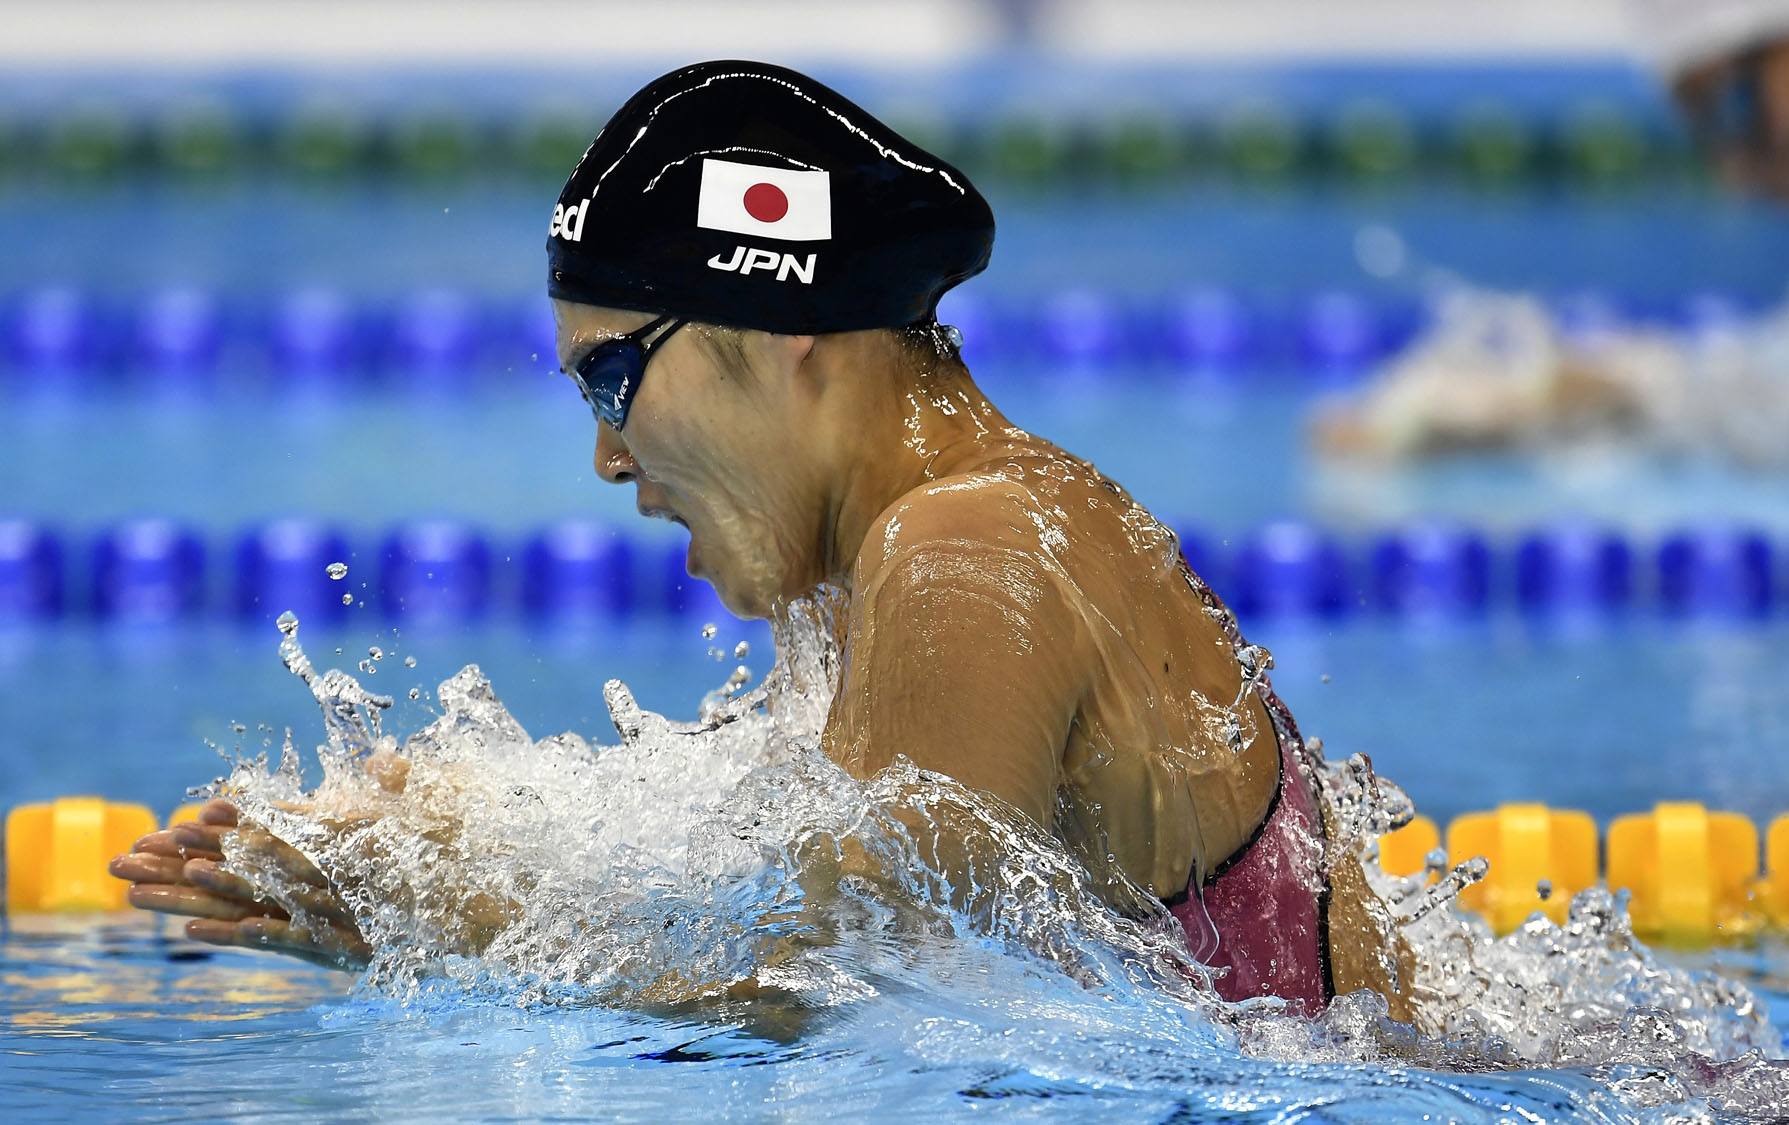 Olympic Swimming Breaststroke apphoto_rio olympics swimming